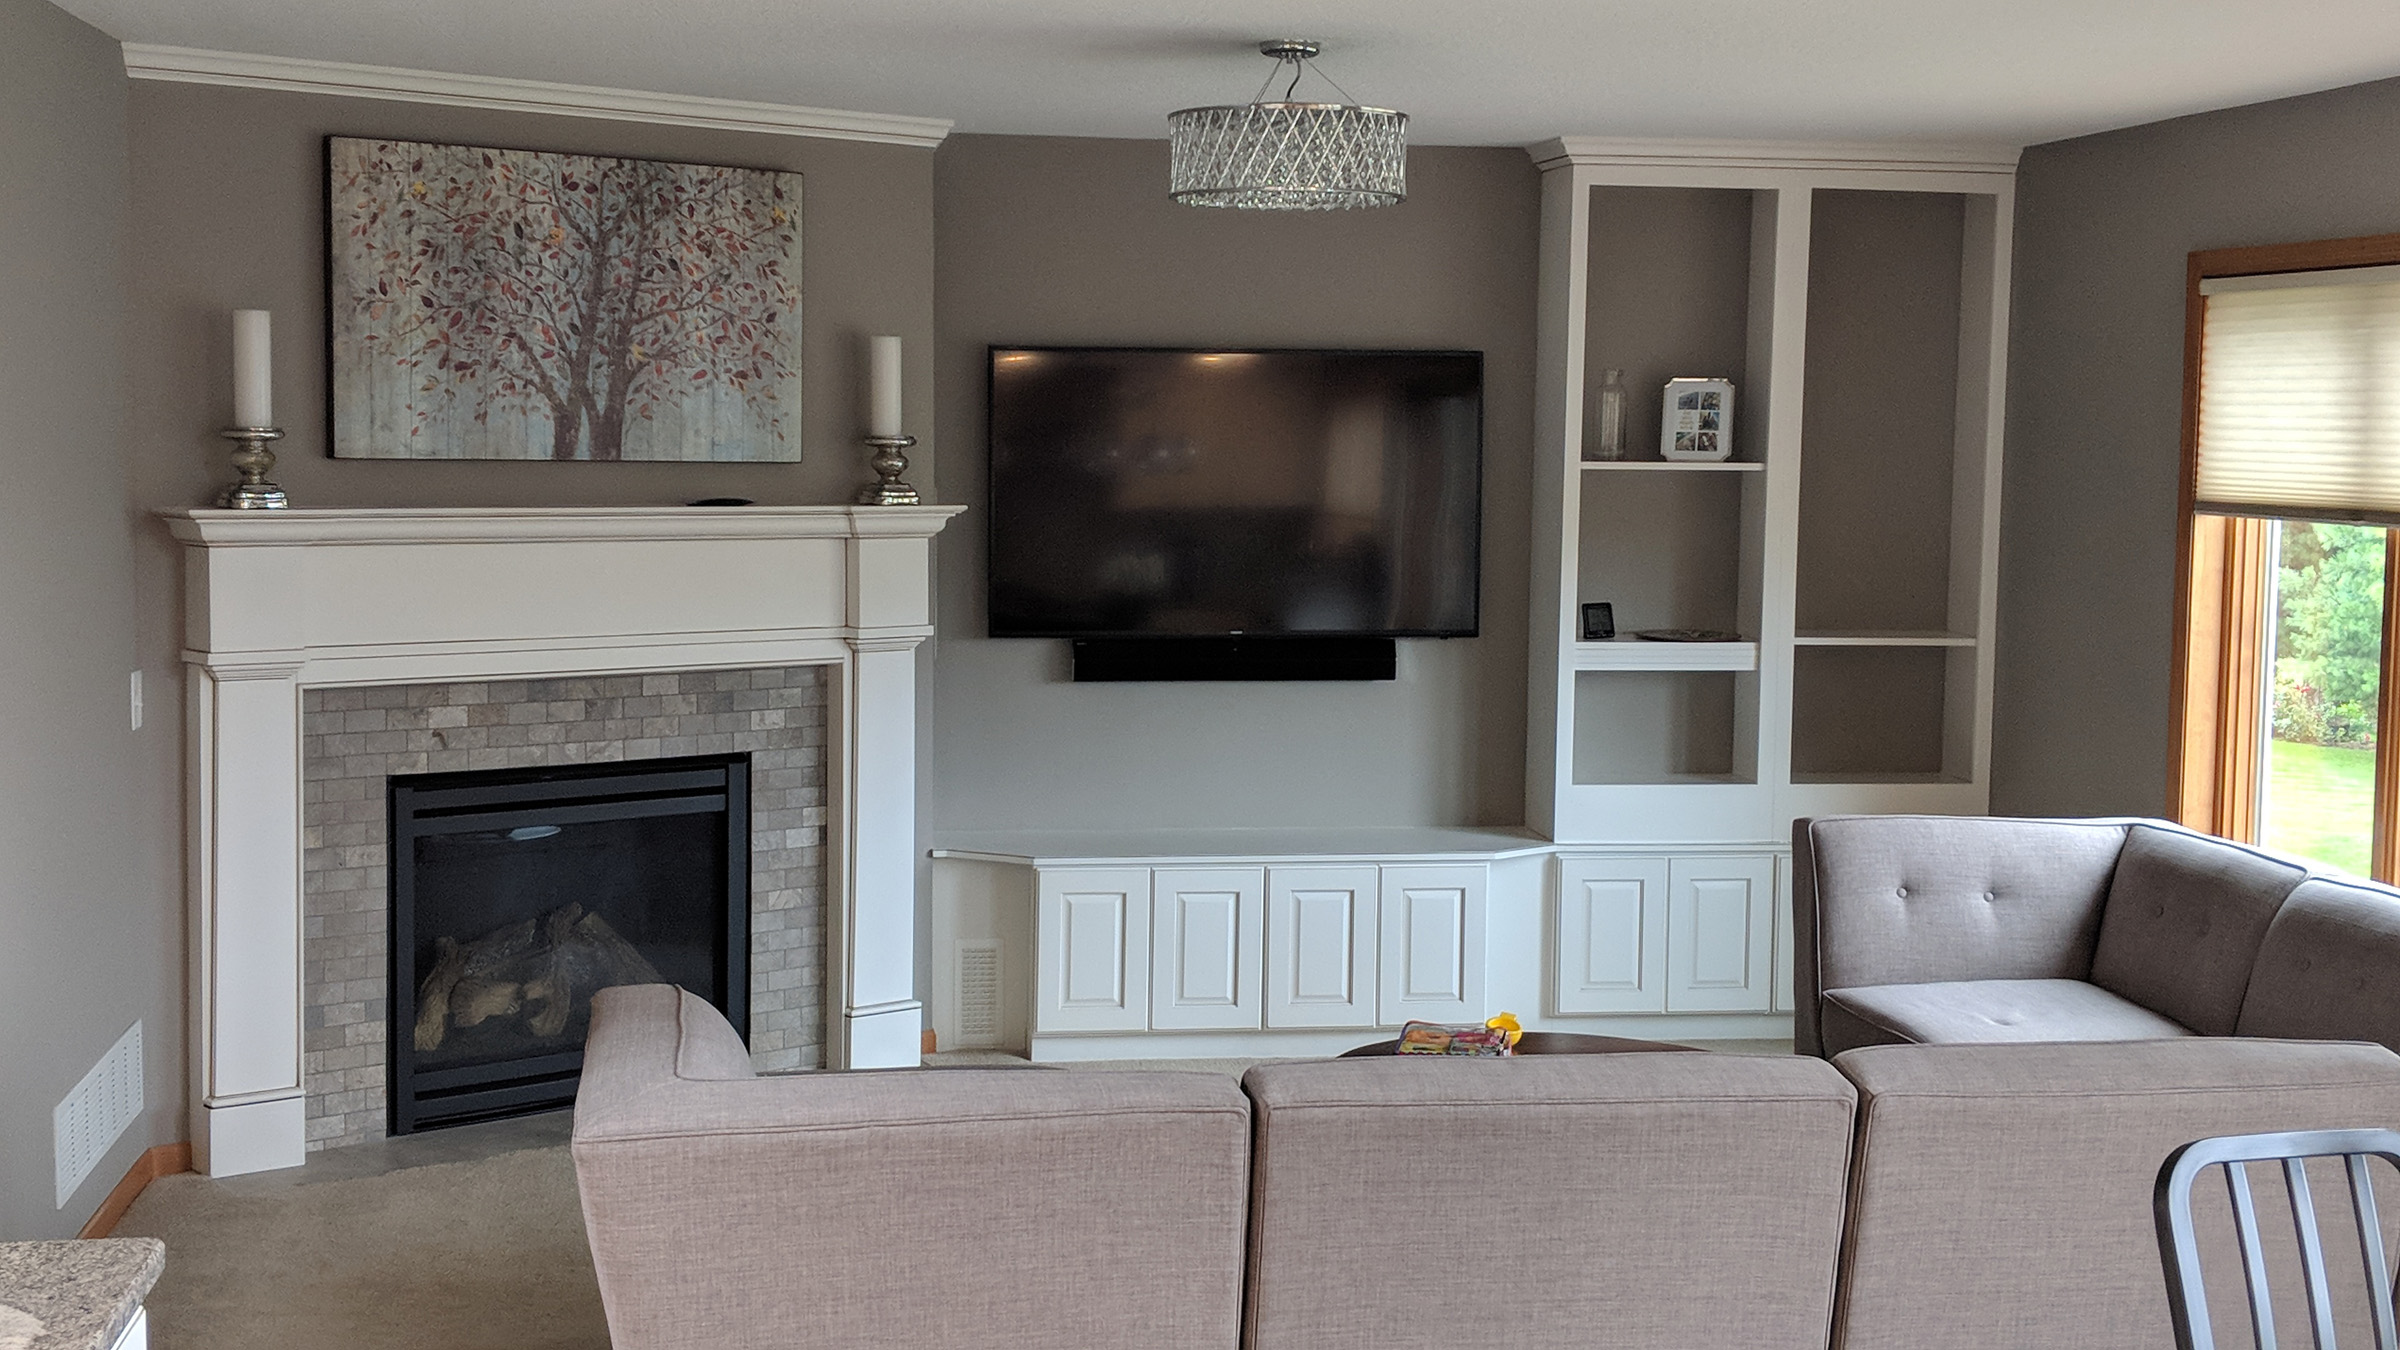 Media wall with built-ins and wall mounted TV